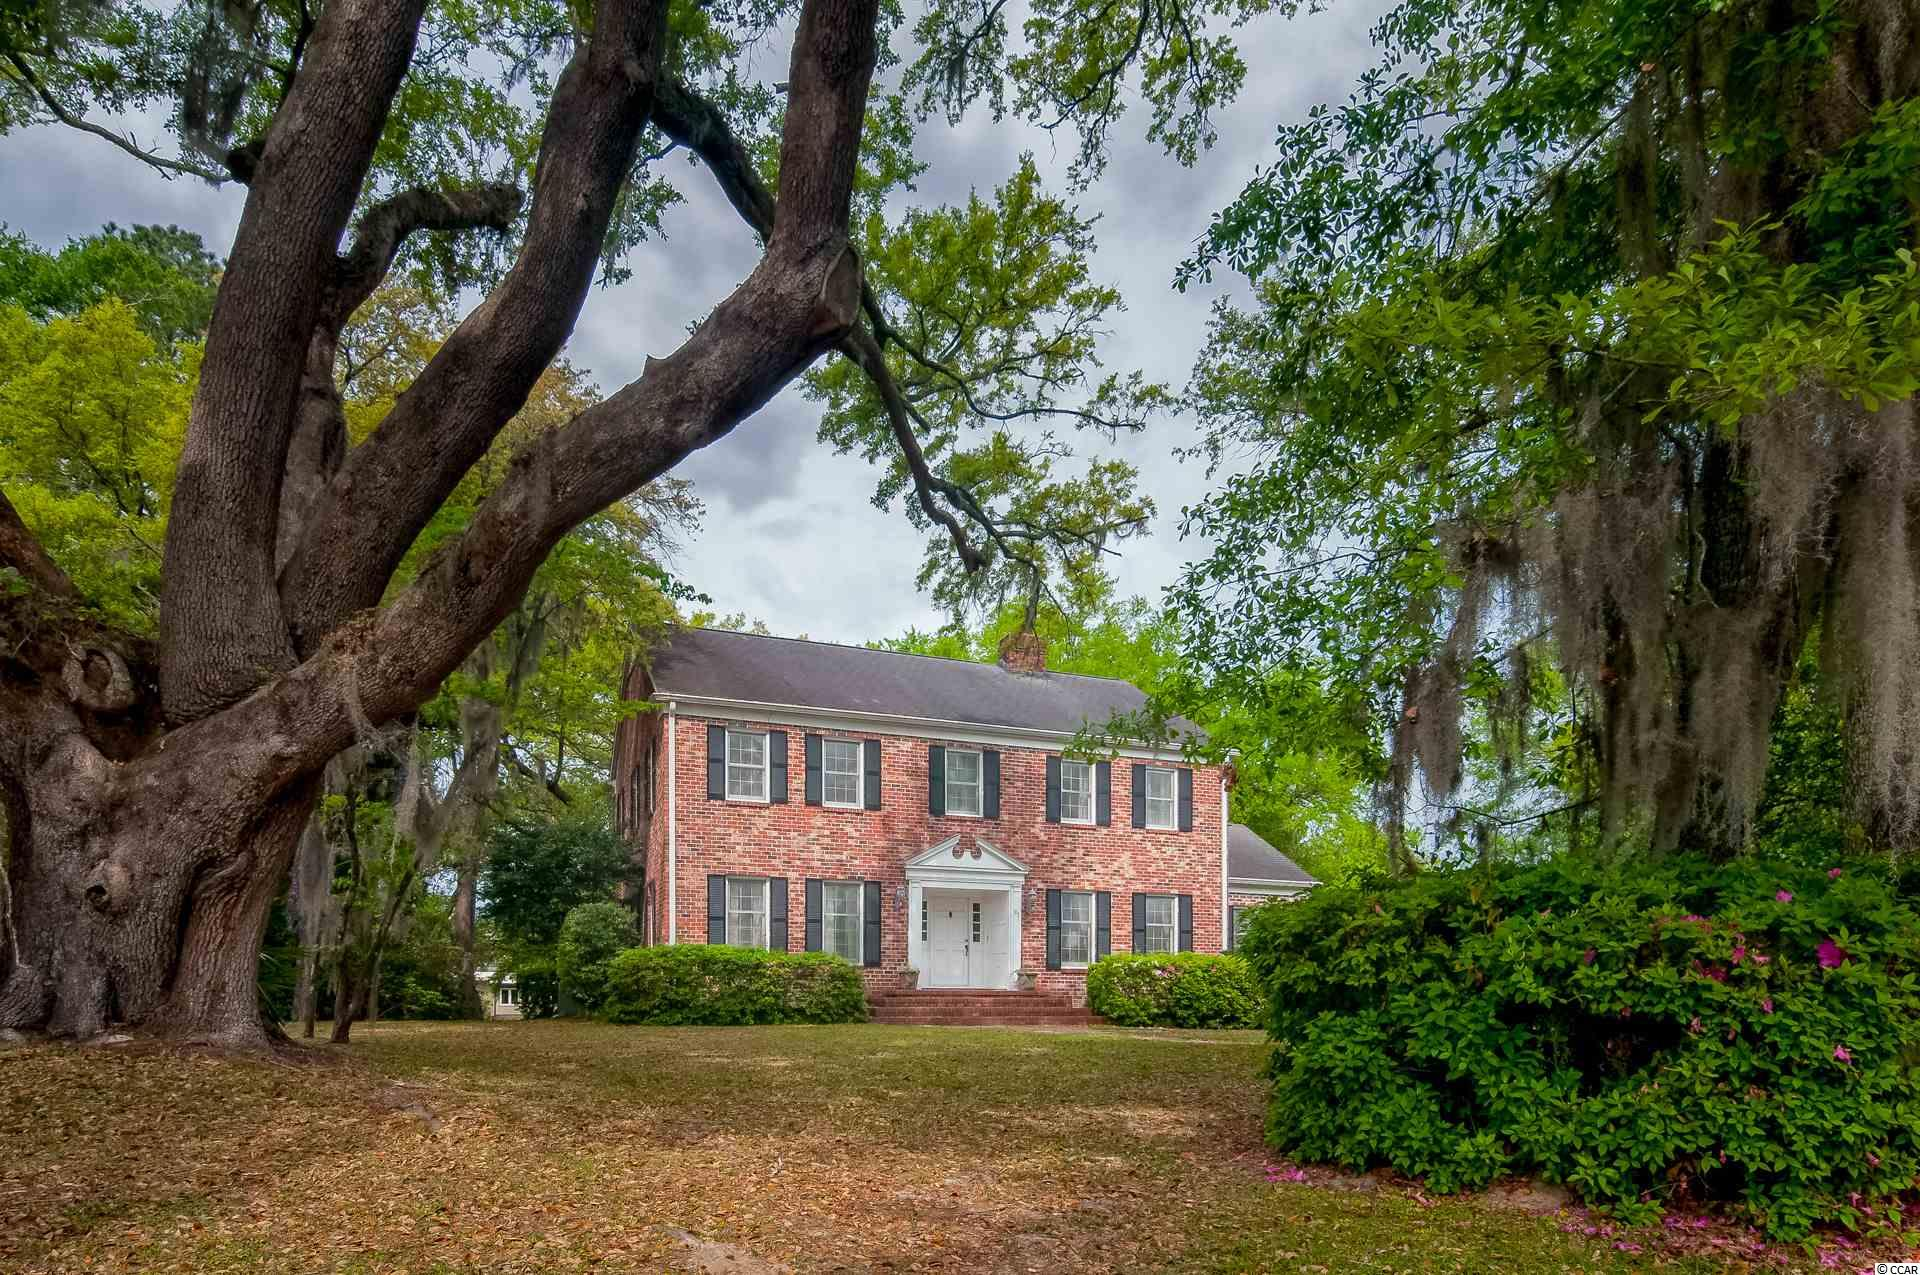 """Welcome to 97 Live Oak lane in beautiful Wedgefield Country Club.  This classic all brick Georgian home sits on a spectacular lot covered in a wonderful array of natural flora and fauna found in the area.  Upon entering thru the front door ,that is surrounded by a broken arch and pediment, you will find a lovely interior with entry hall, formal living room with wood burning fireplace, and a classic dining room.  The den, kitchen and breakfast room feature beams that were salvaged from a historic property.  In the den you will also find a wall of ballast brick that surrounds a second wood burning fireplace.   Walls in the den, the stairwell, and one downstairs bedroom are all covered in cypress boards.   Take note that a second downstairs bedroom opens onto a lovely screened porch overlooking the canal that leads to black river.   Upstairs you will find four more bedrooms and two more baths.   Loads of storage await in the closets and the attic space. Outside you will find a charming garage that favors a """"little red barn"""".     Enjoy the many amenities that Wedgefield offers!   Quiet streets, golfing, dining, and more!    Close to area beaches and the waterways of Historic Seaport Georgetown!   This classic home is being sold """"as is"""" but offer the buyer a fabulous opportunity for a large 'Forever home""""."""